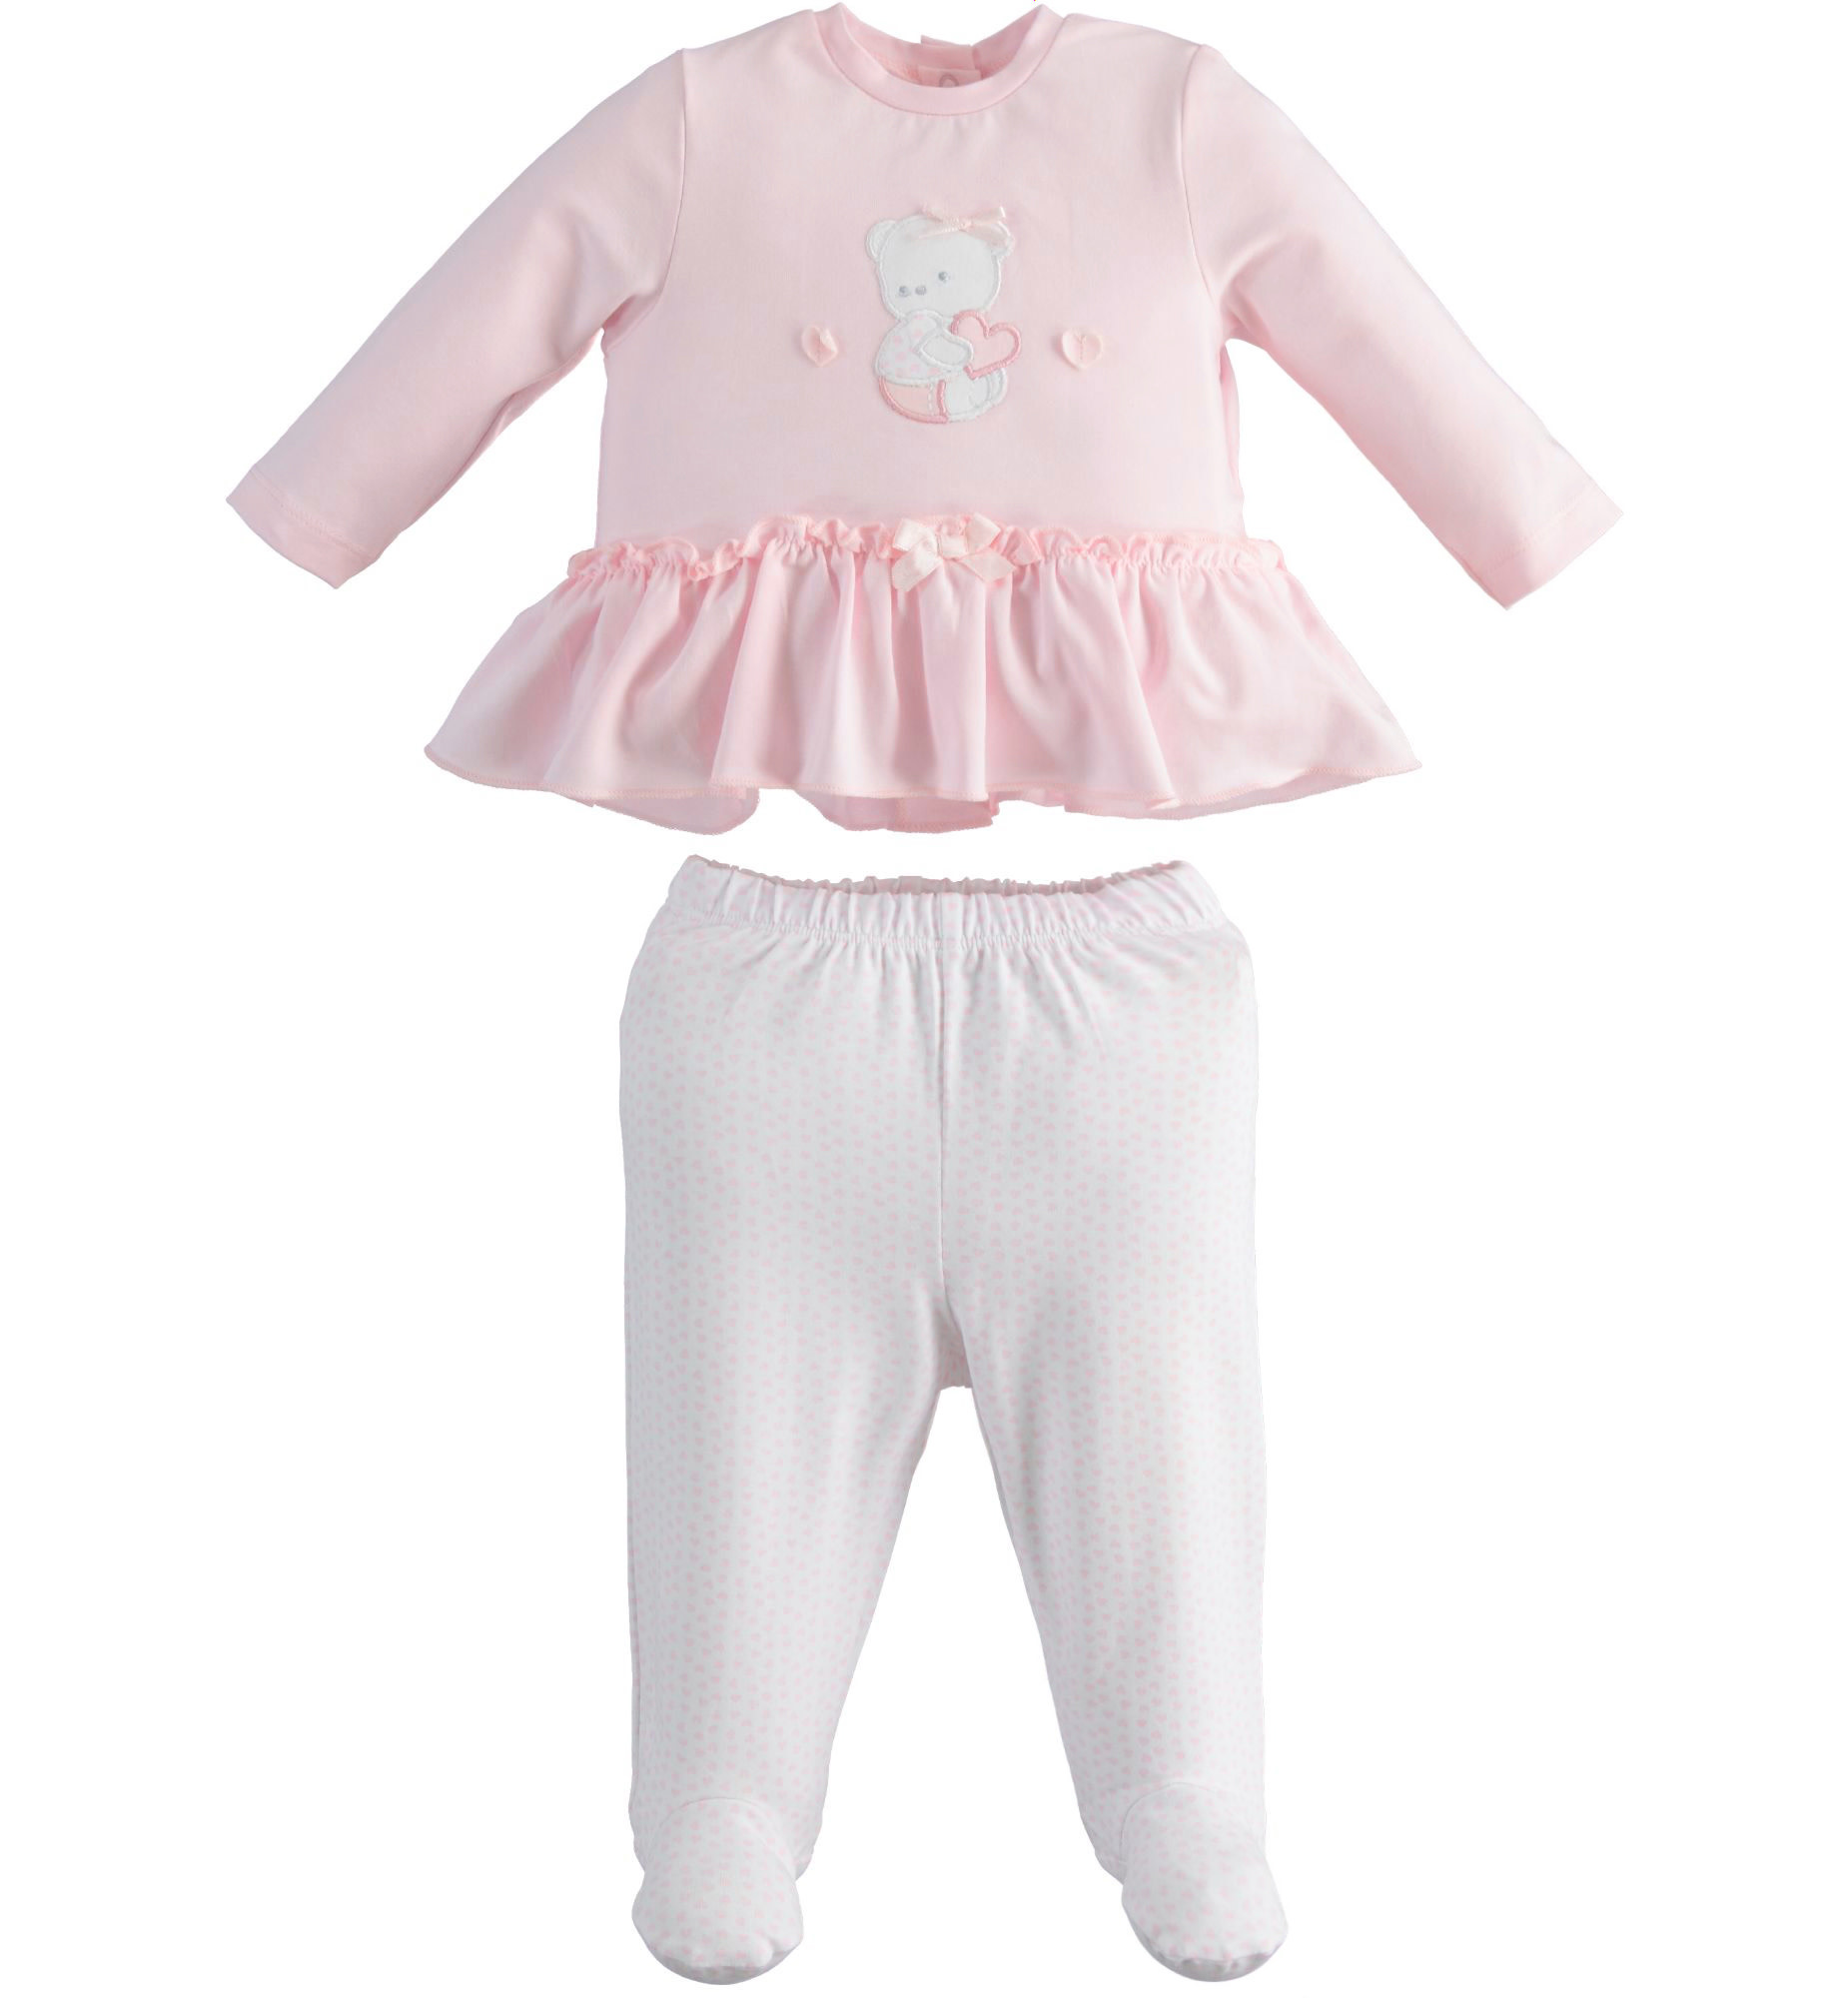 iDo iDO SS20 Baby Girl Pink Teddy 2 piece set with feet J121